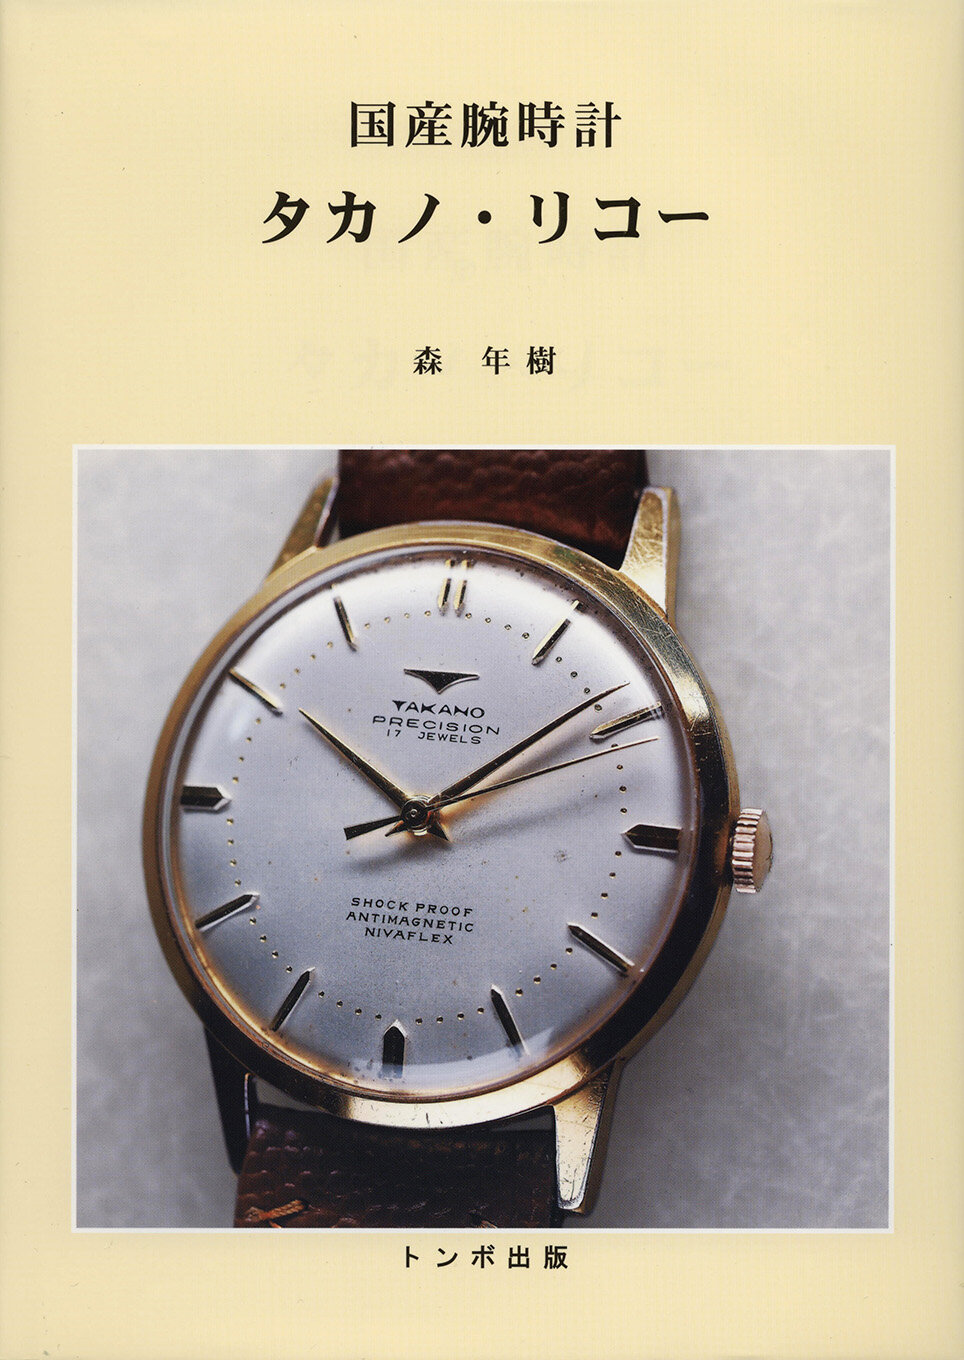 Cover - Domestic Watch - Takano Ricoh